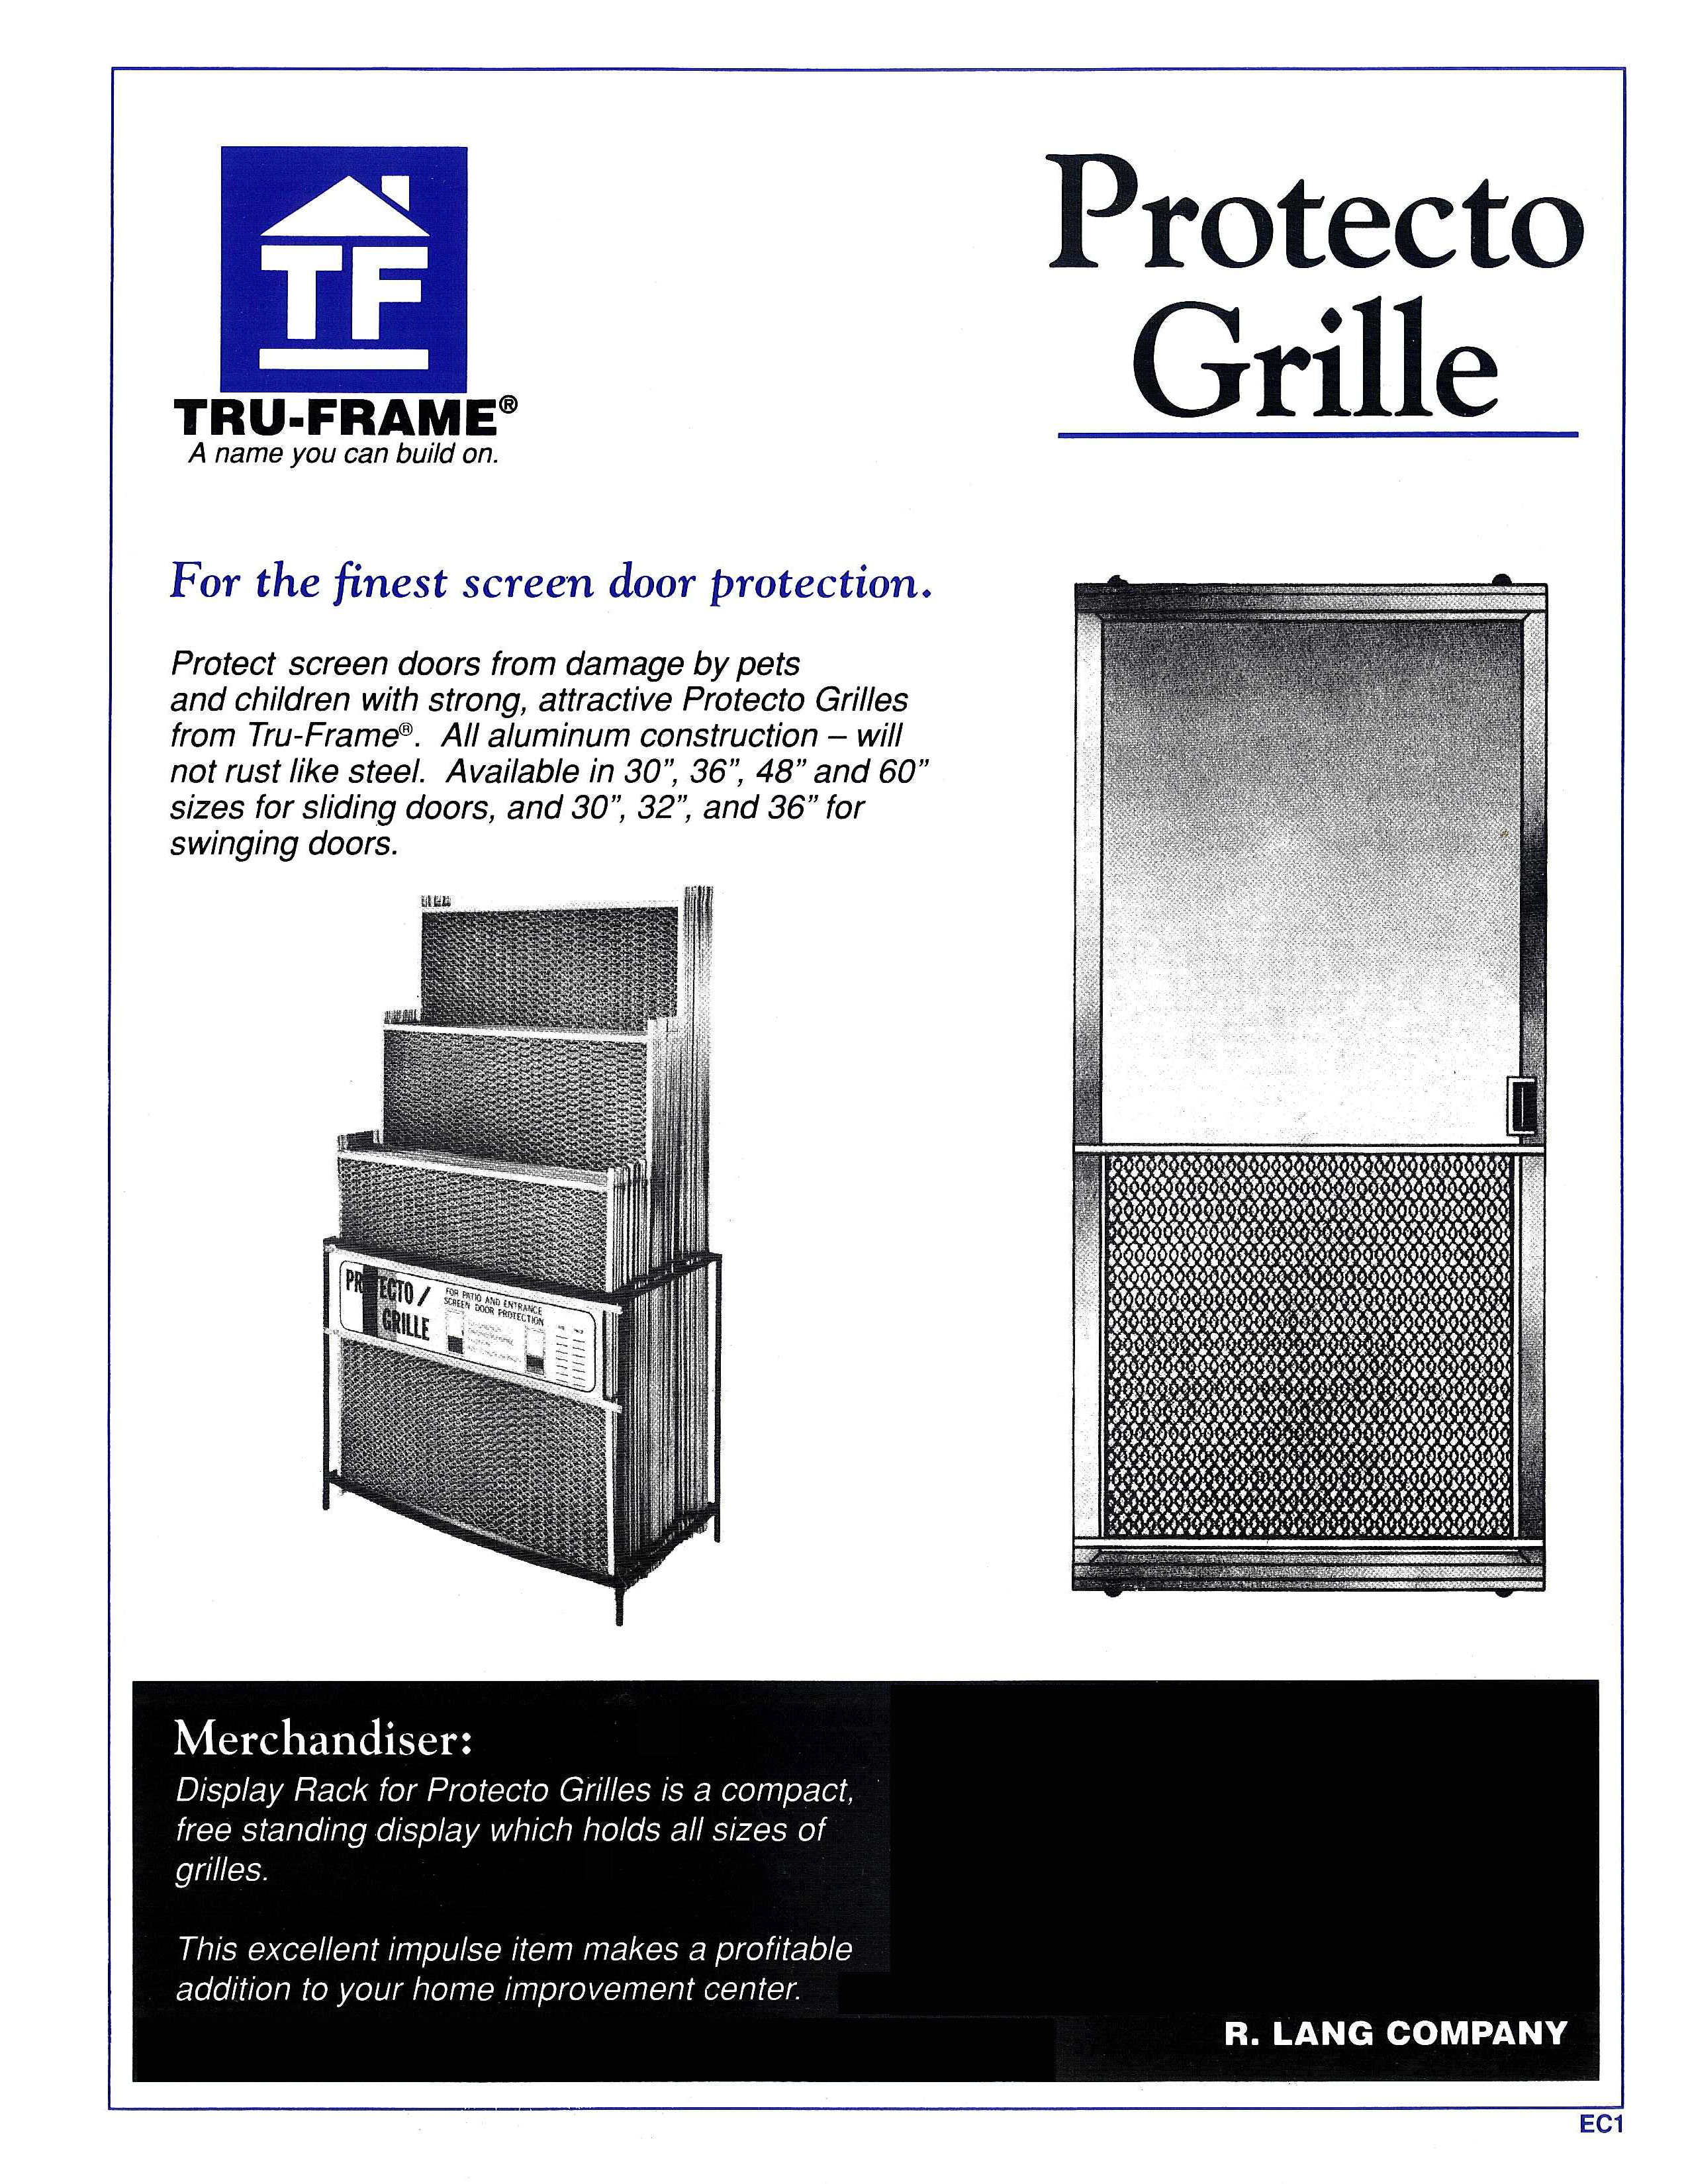 Tru frame a name you can build on online catalog e grille brochure vtopaller Image collections